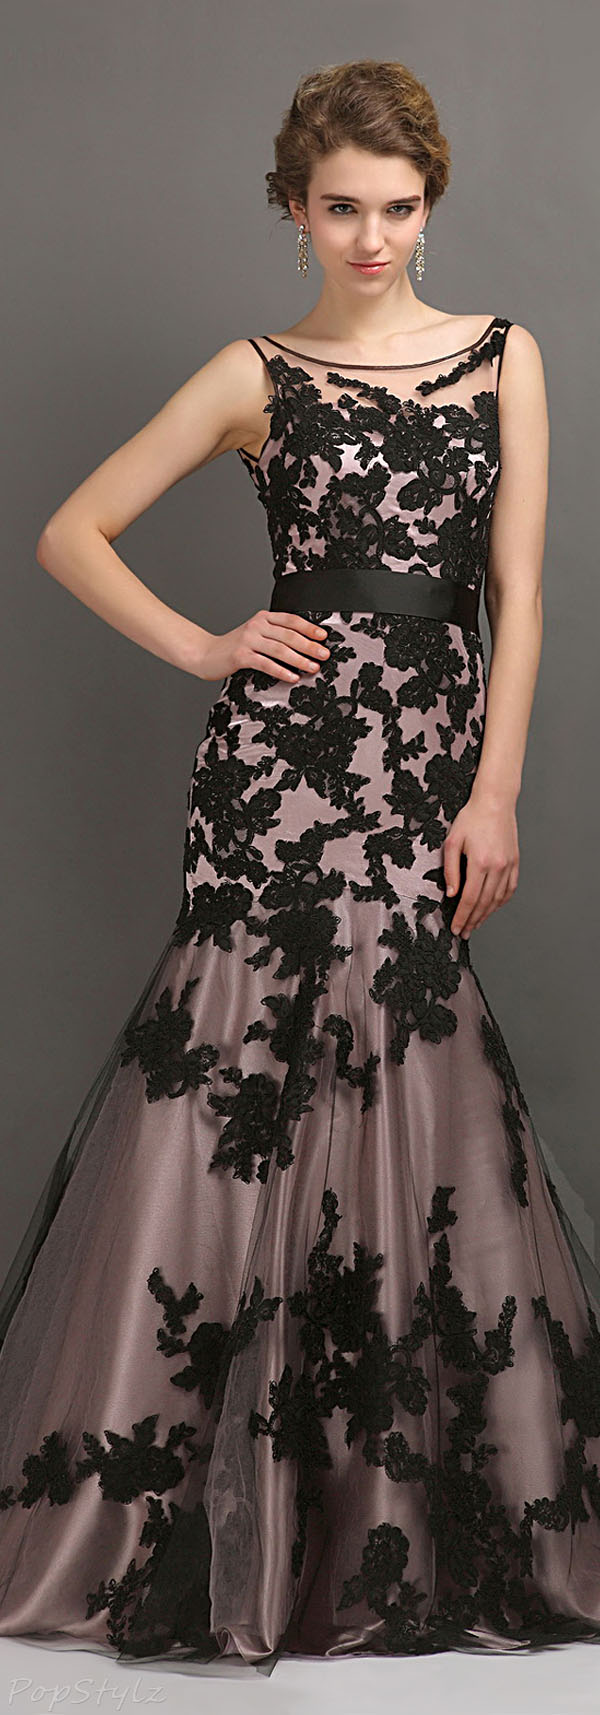 Cocomelody Black Lace Trumpet Mermaid Gown